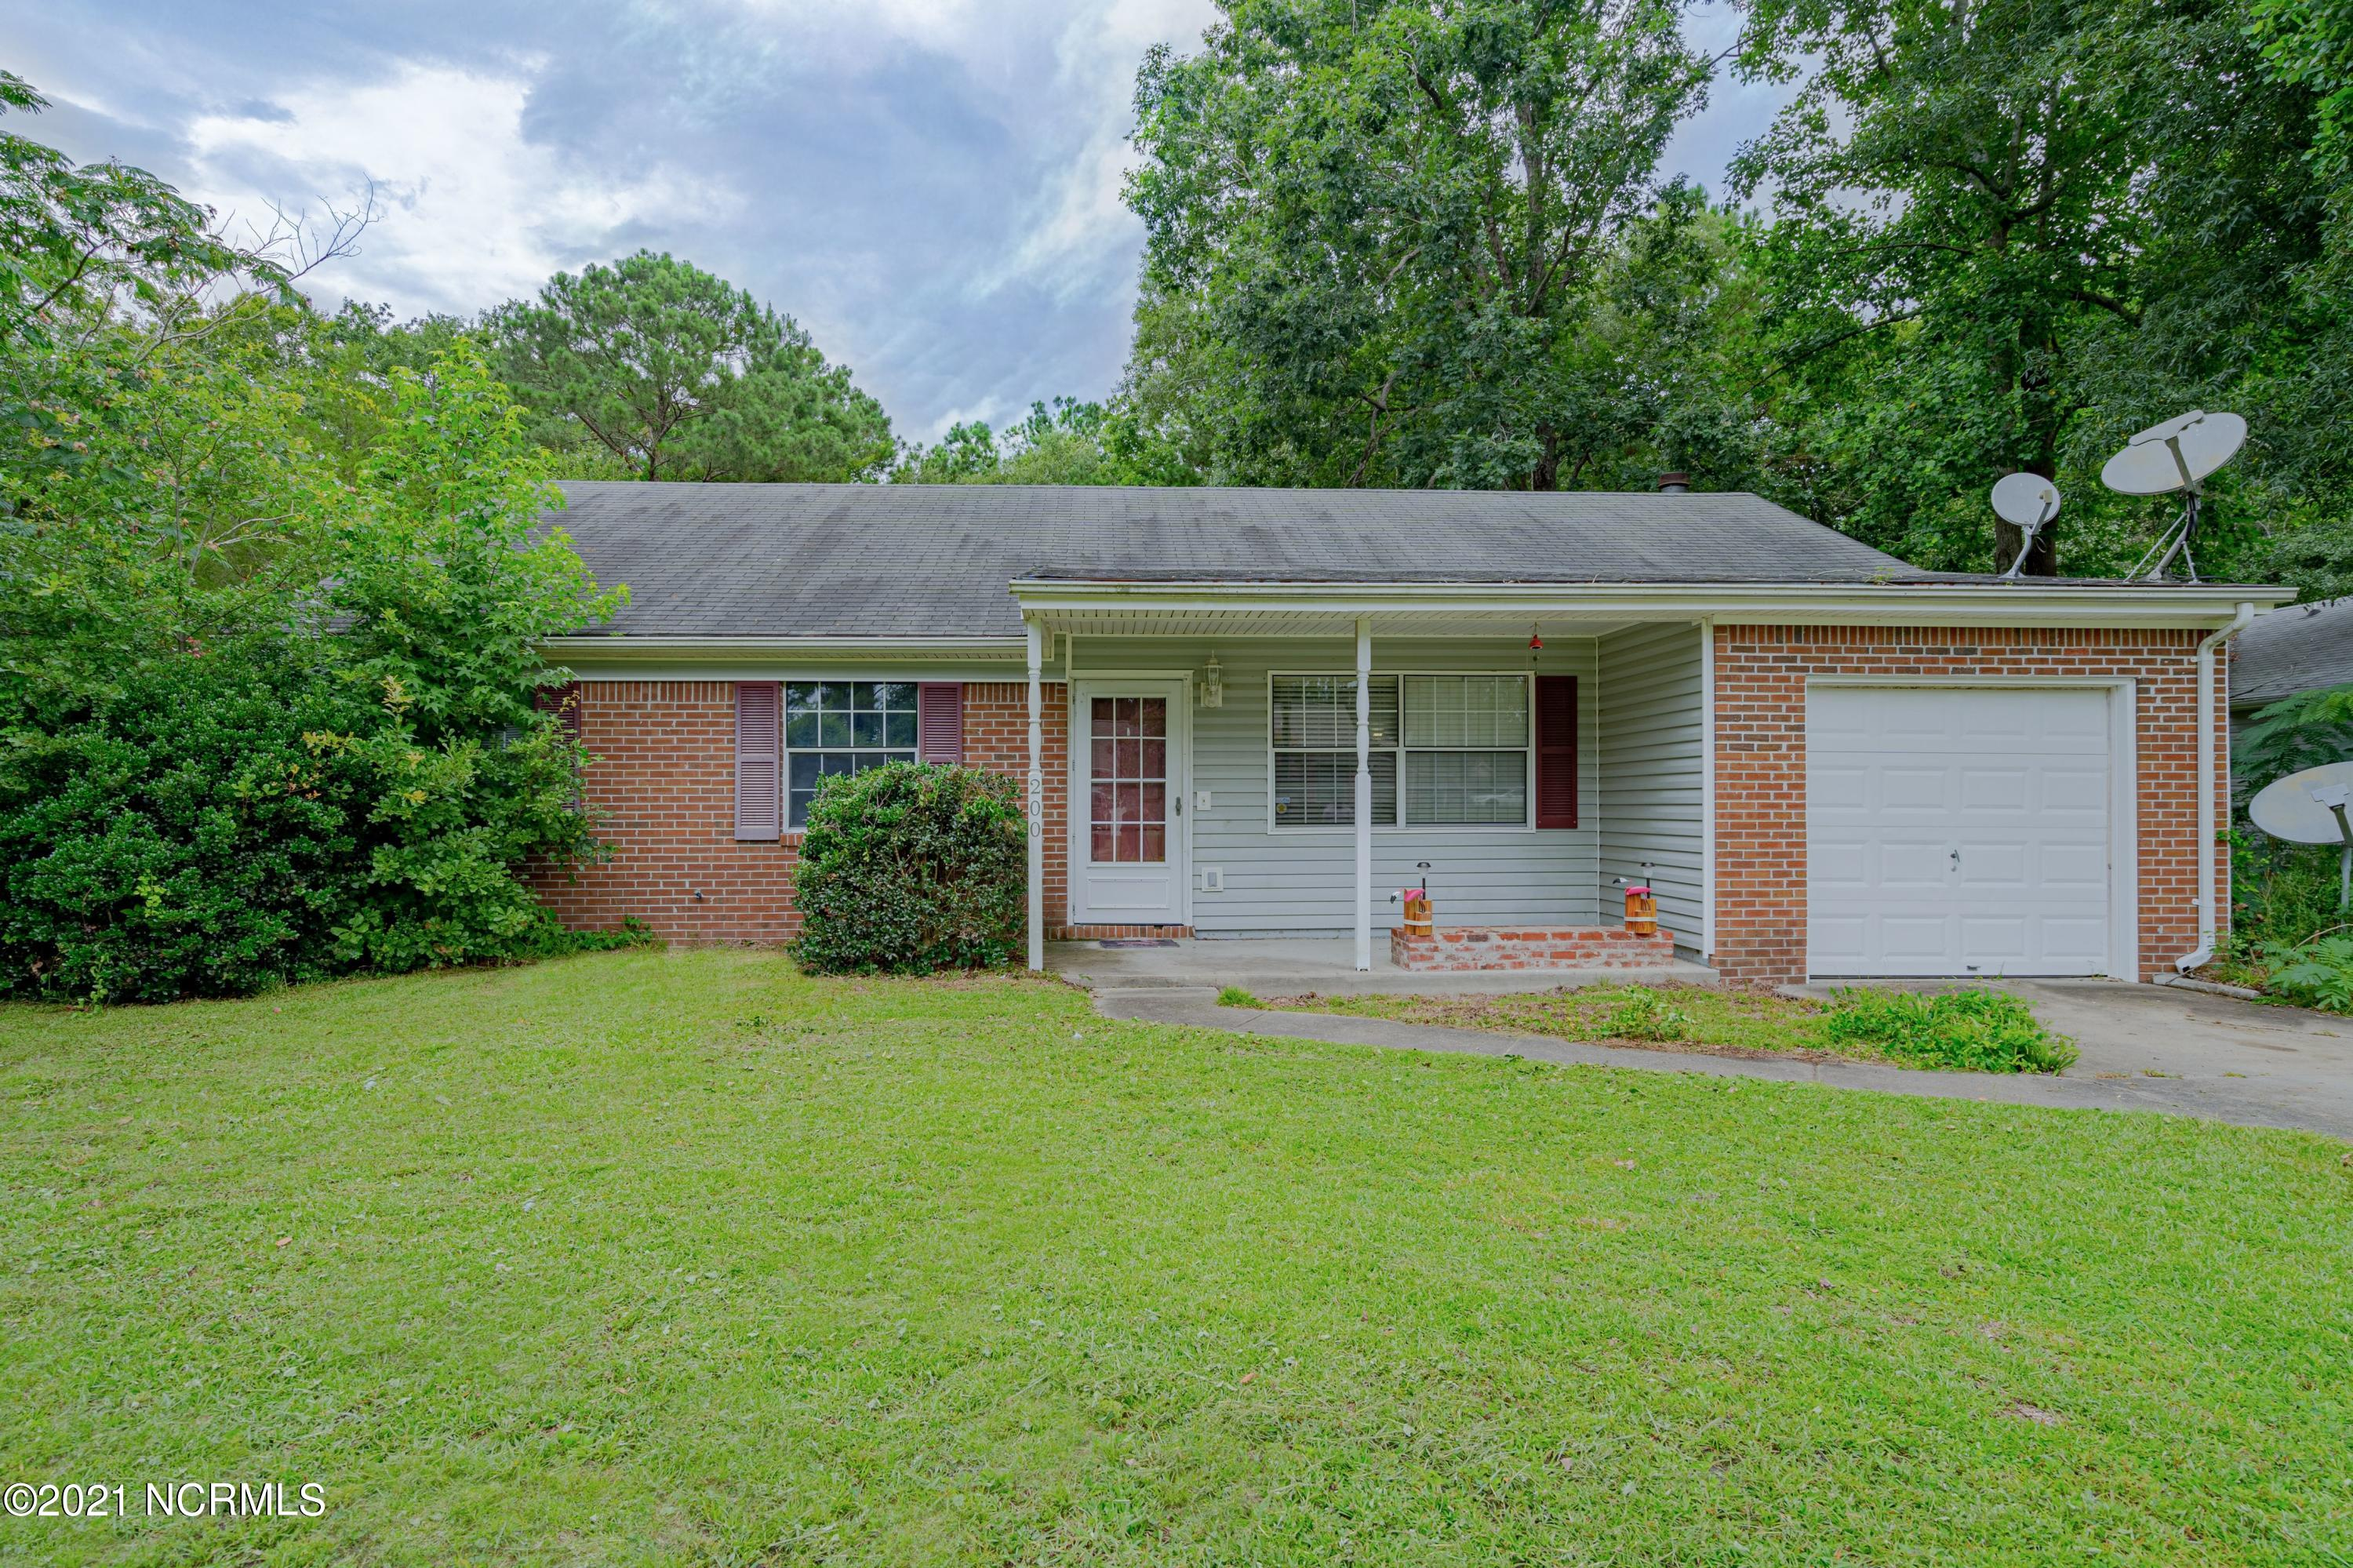 Three bedroom, two bathroom home just minutes away from various local restaurants and the Jacksonville mall. The spacious backyard is perfect for outdoor festivities and is near a local creek. This cozy home in this fast moving market will not last long, so schedule your showing today!!!